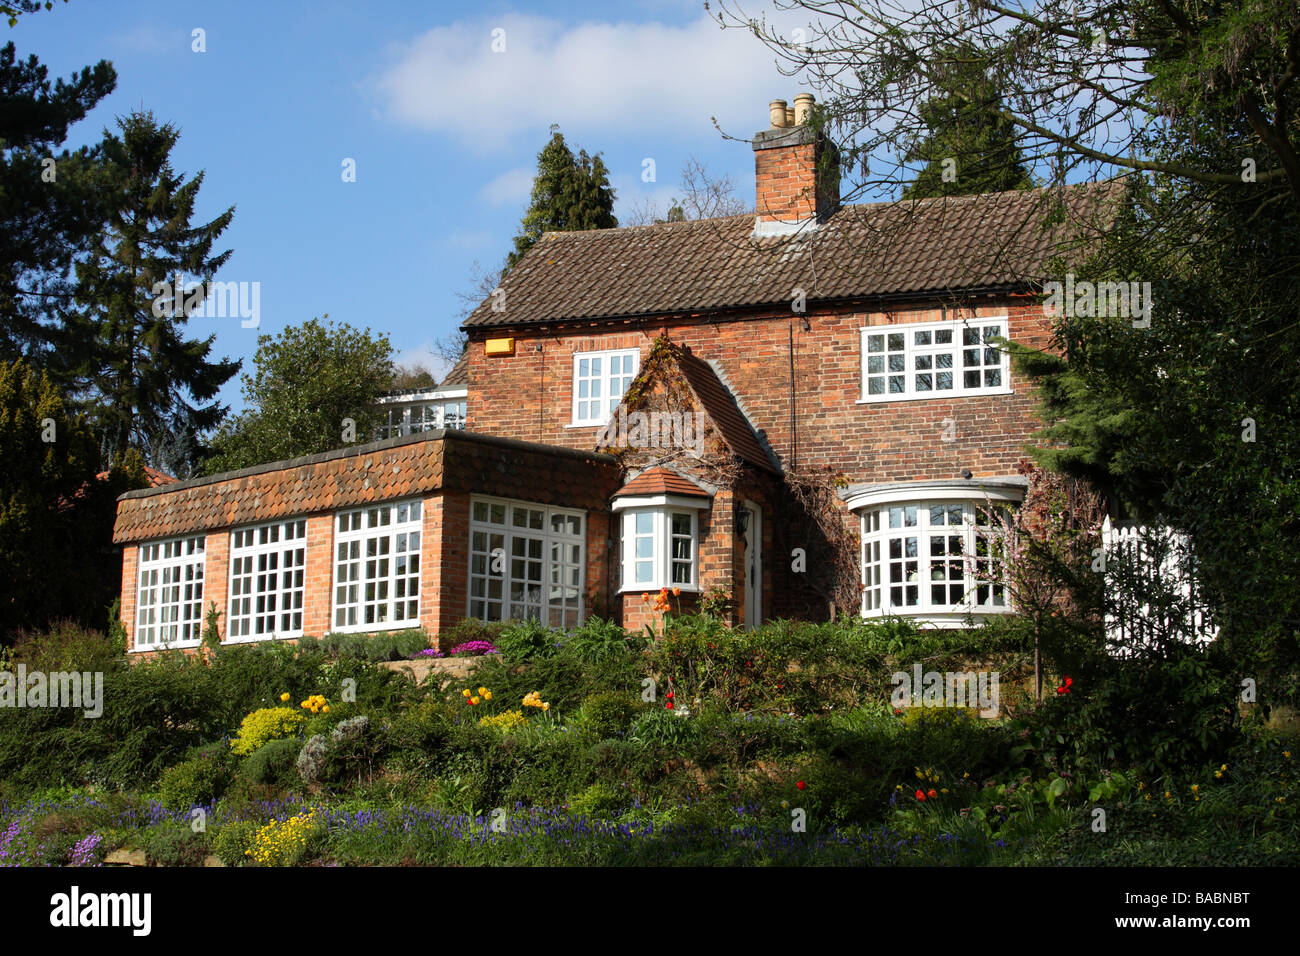 A detached house in the U.K. Stock Photo